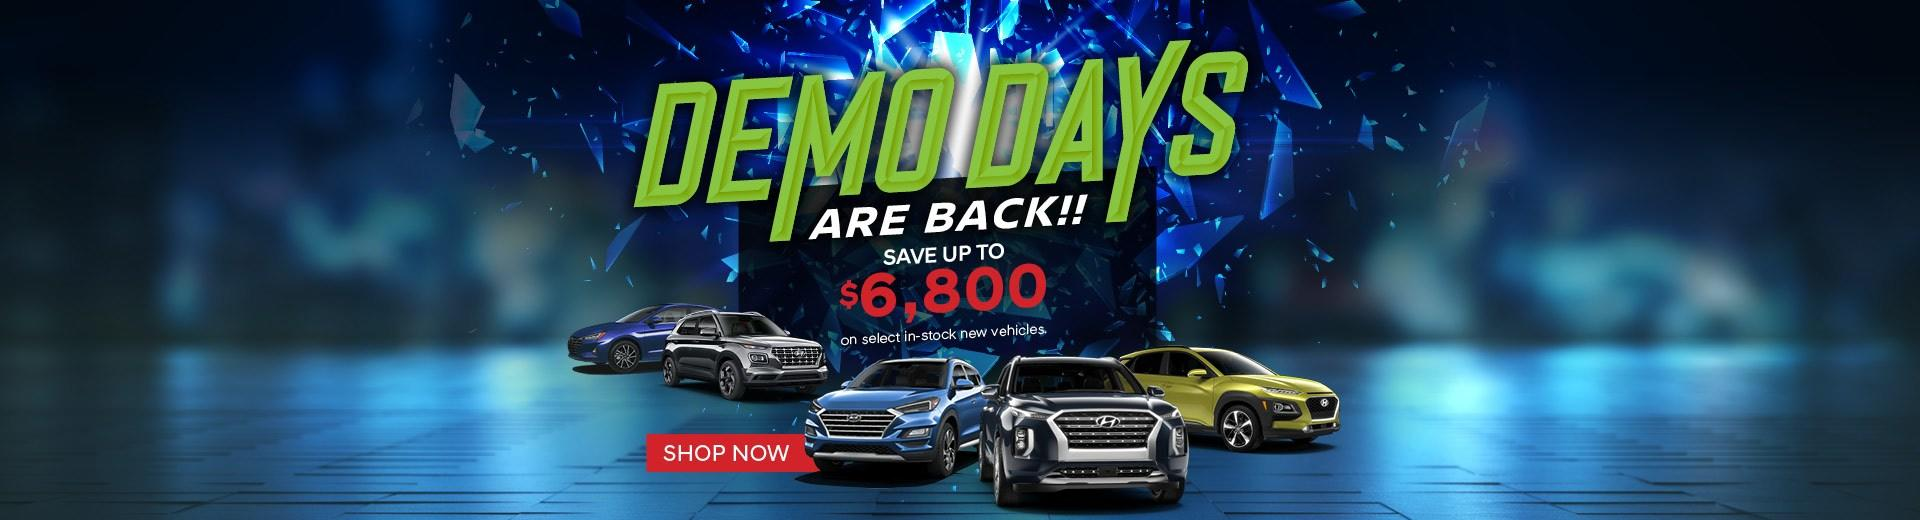 Demo Days at Northland Hyundai